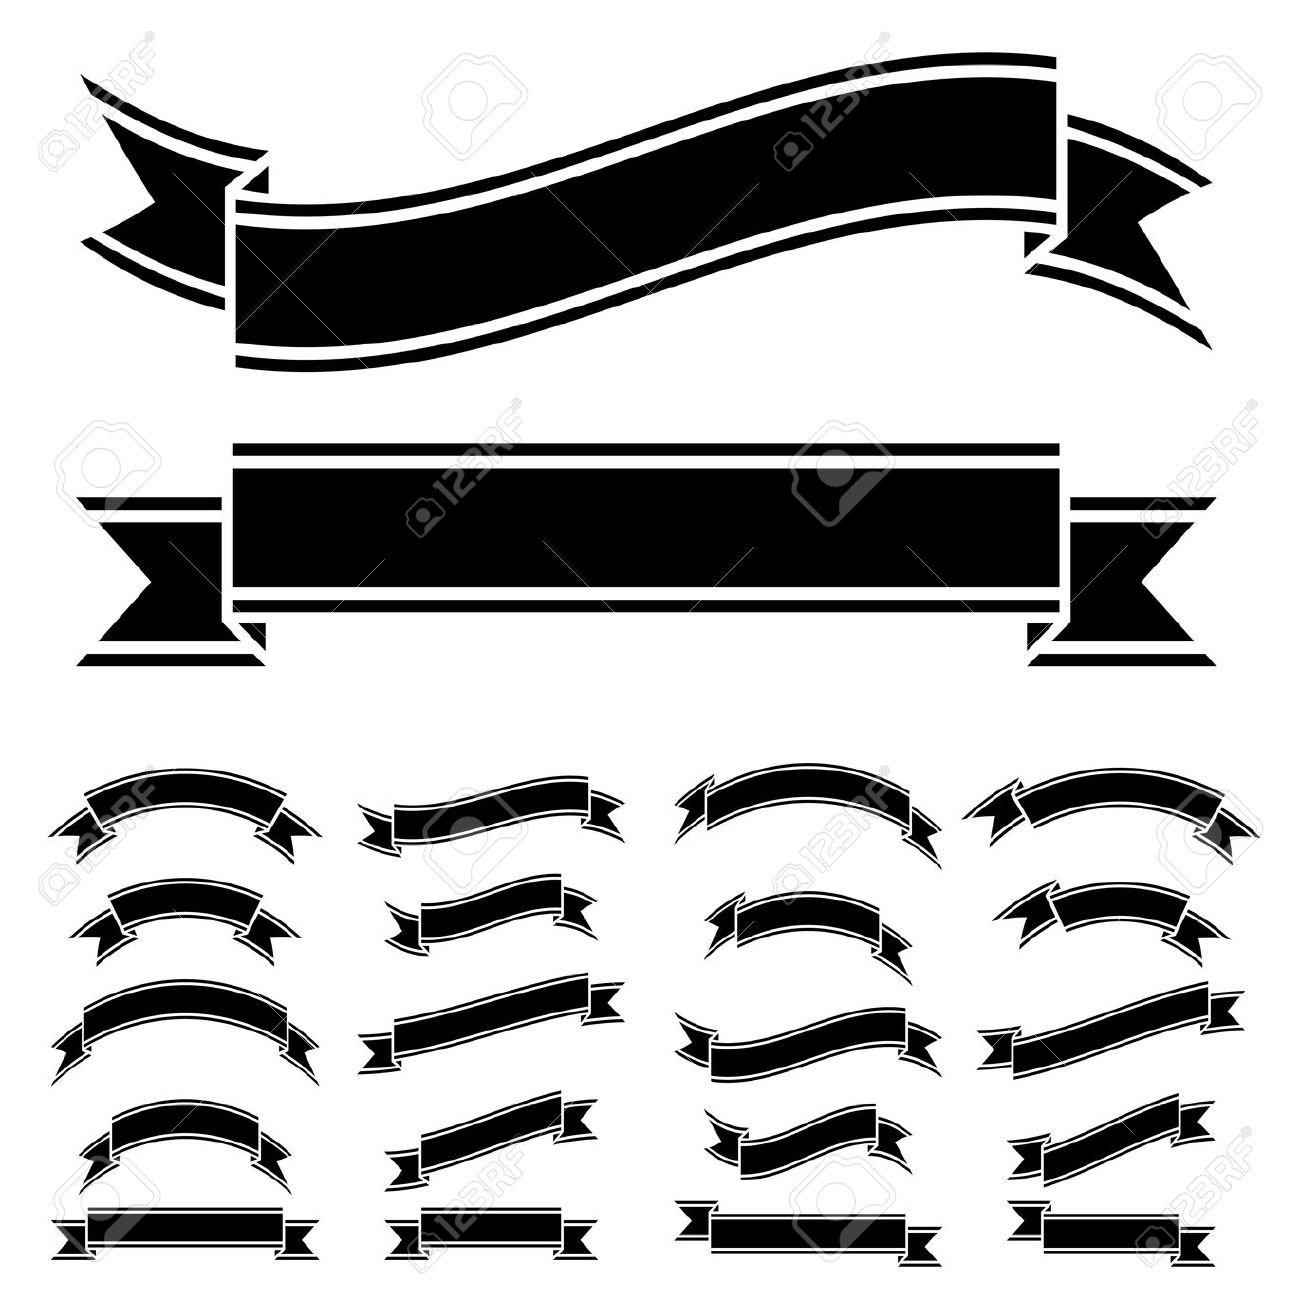 Ribbon Clipart Black And White